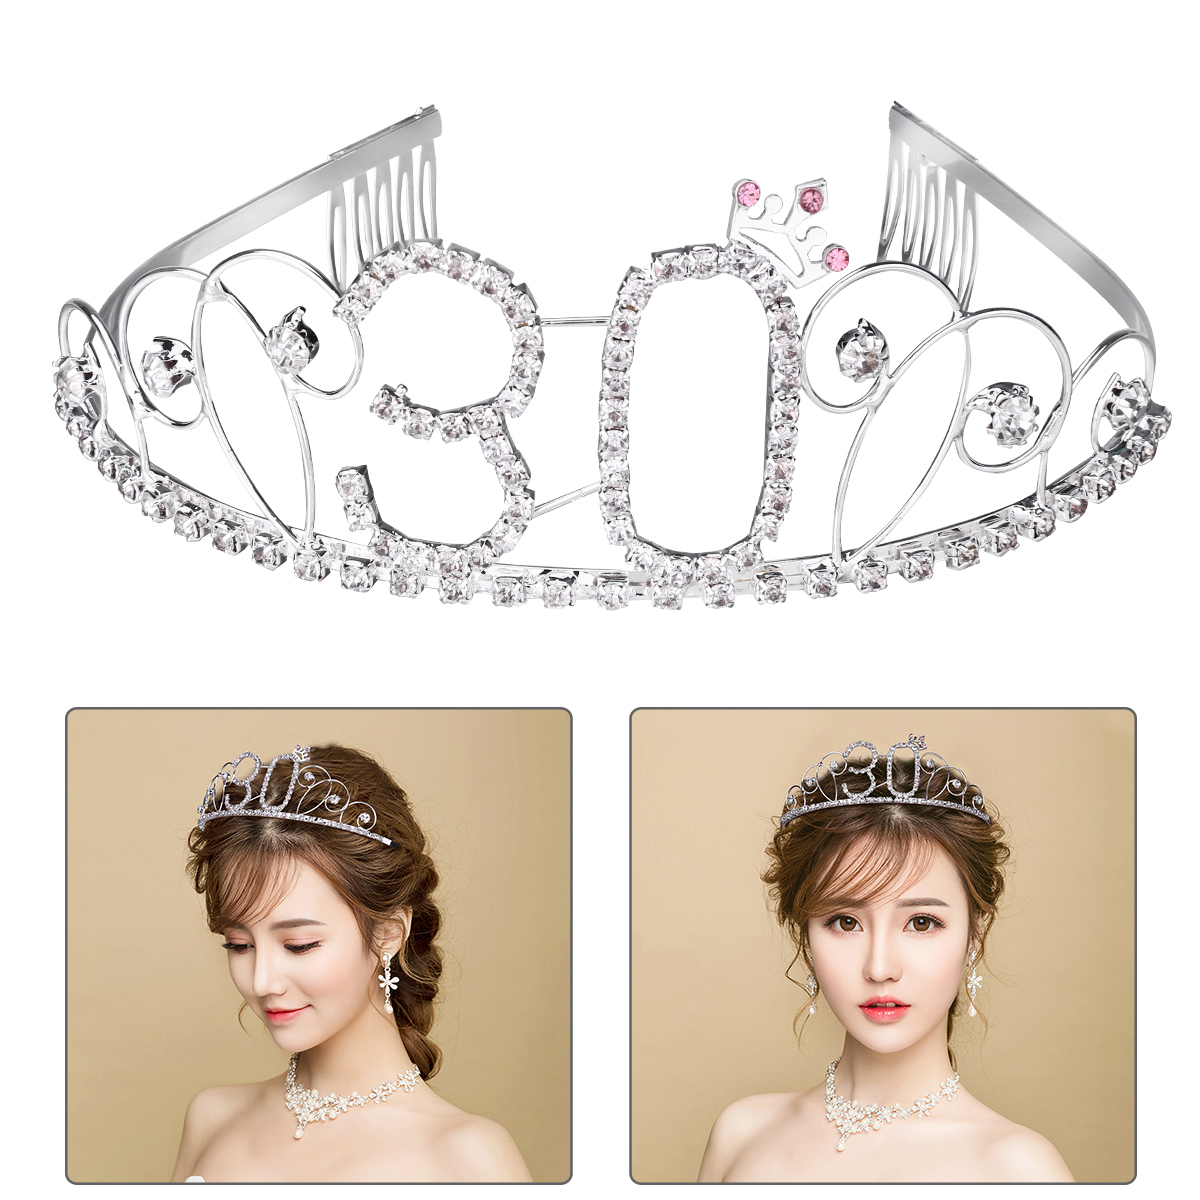 New Fashion Bridal Hair Accessory Ladies Ear Decoration Wedding Hair Jewelry With Tassel New Arrival Attractive And Durable Back To Search Resultsjewelry & Accessories Jewelry Sets & More